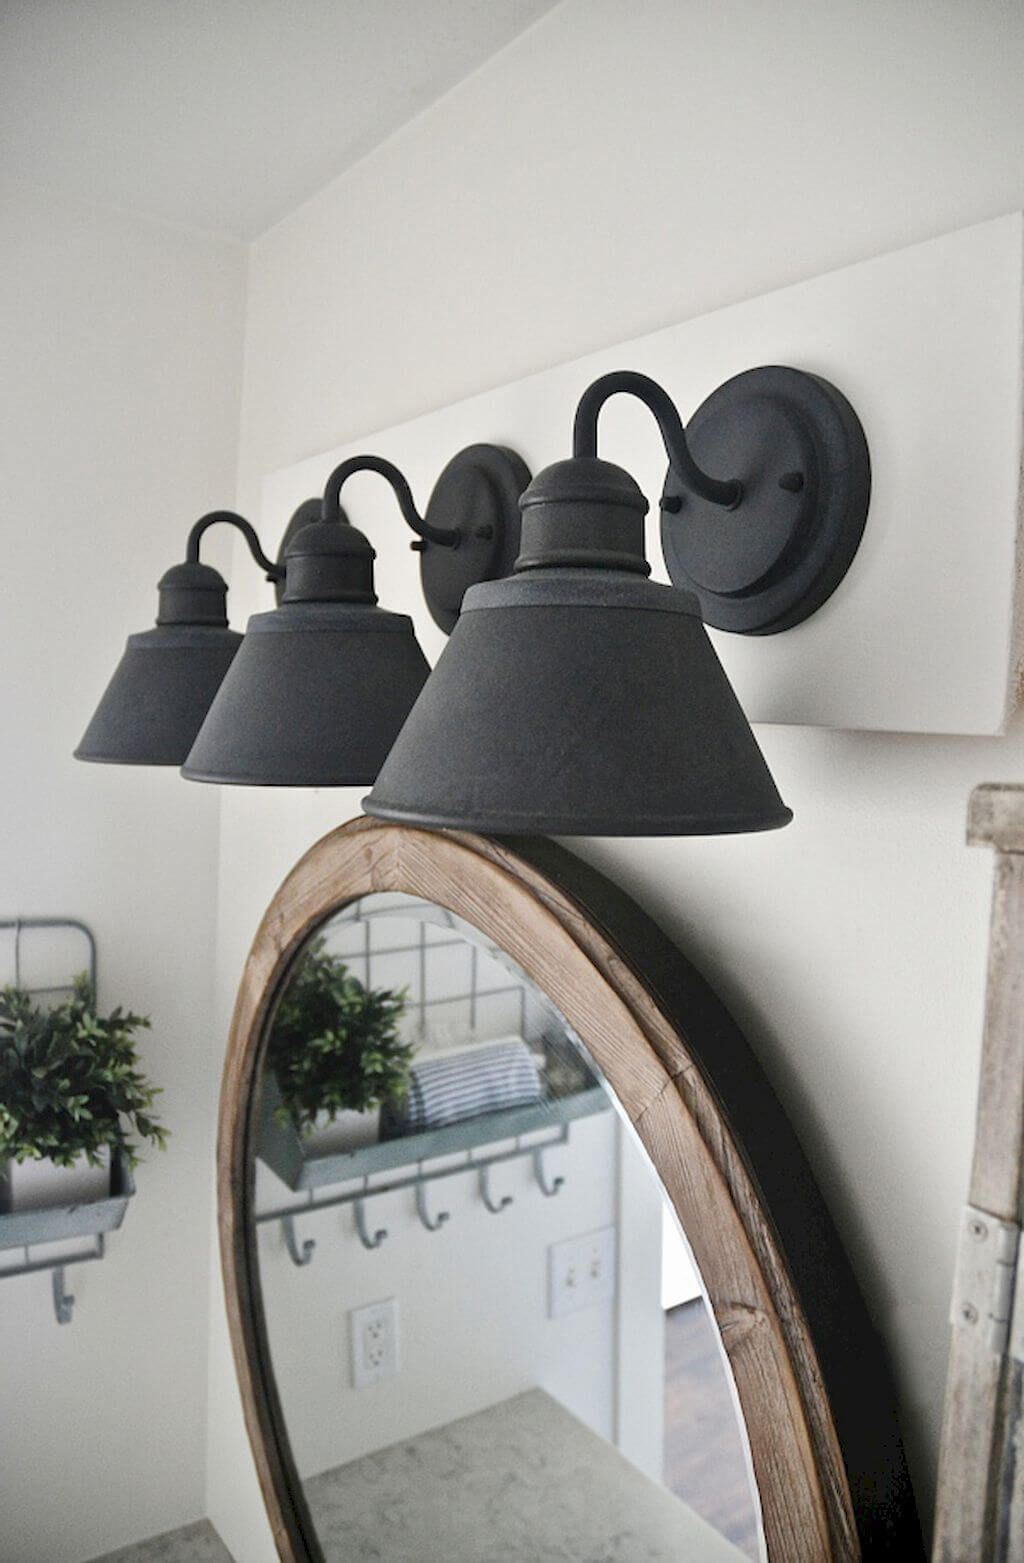 36 Farmhouse Lighting Ideas To Brighten Up Your Space In A Charming Way Farmhouse Bathroom Light Light Fixtures Bathroom Vanity Modern Farmhouse Bathroom